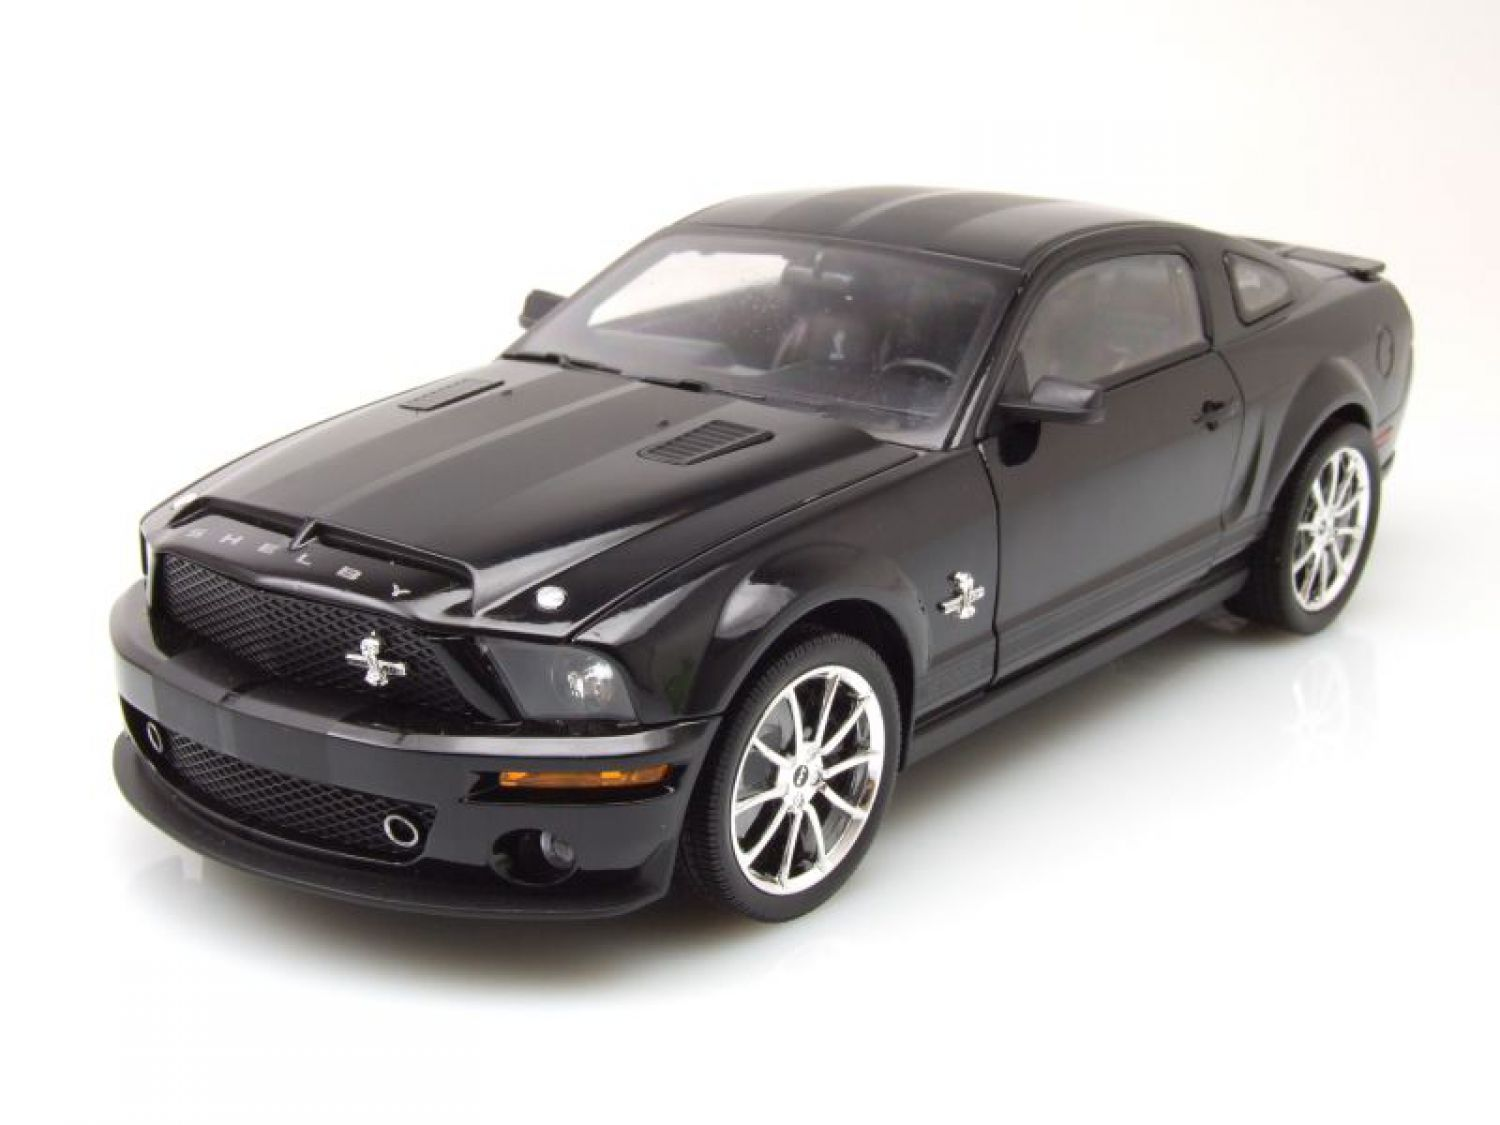 ford shelby mustang gt 500kr 2008 schwarz knight rider. Black Bedroom Furniture Sets. Home Design Ideas